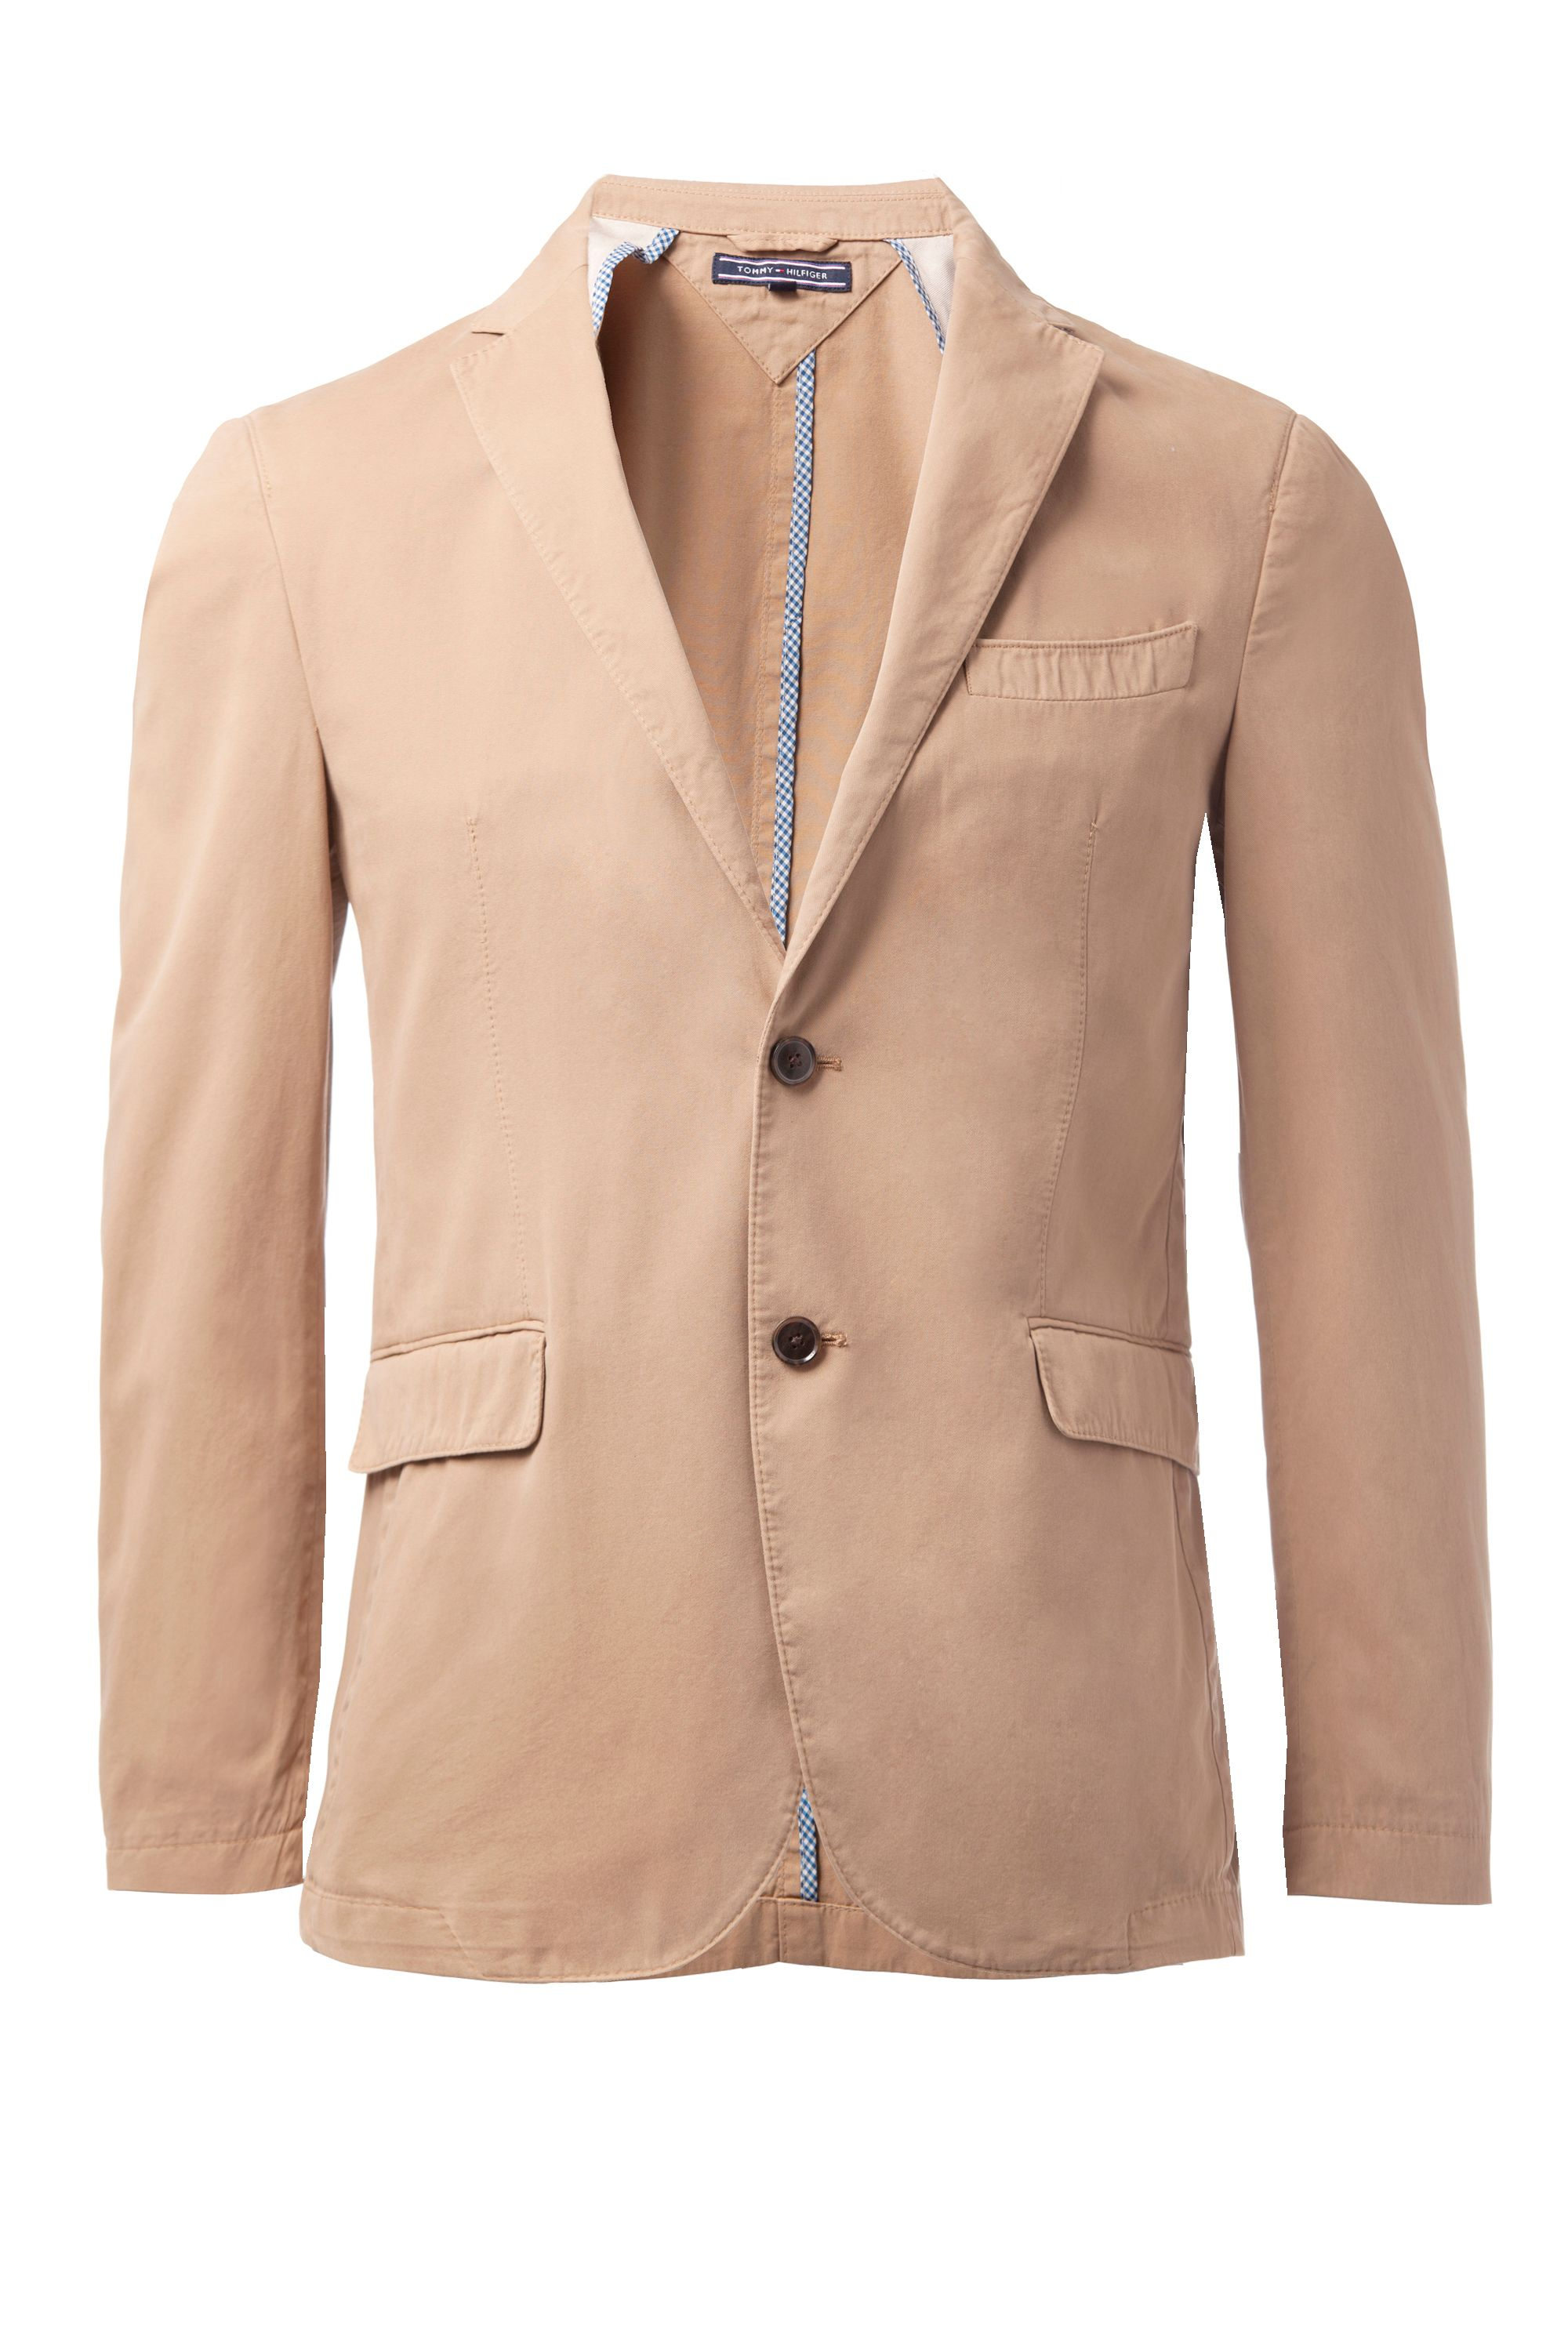 tommy hilfiger gmd twill clark casual blazer in beige for men lyst. Black Bedroom Furniture Sets. Home Design Ideas